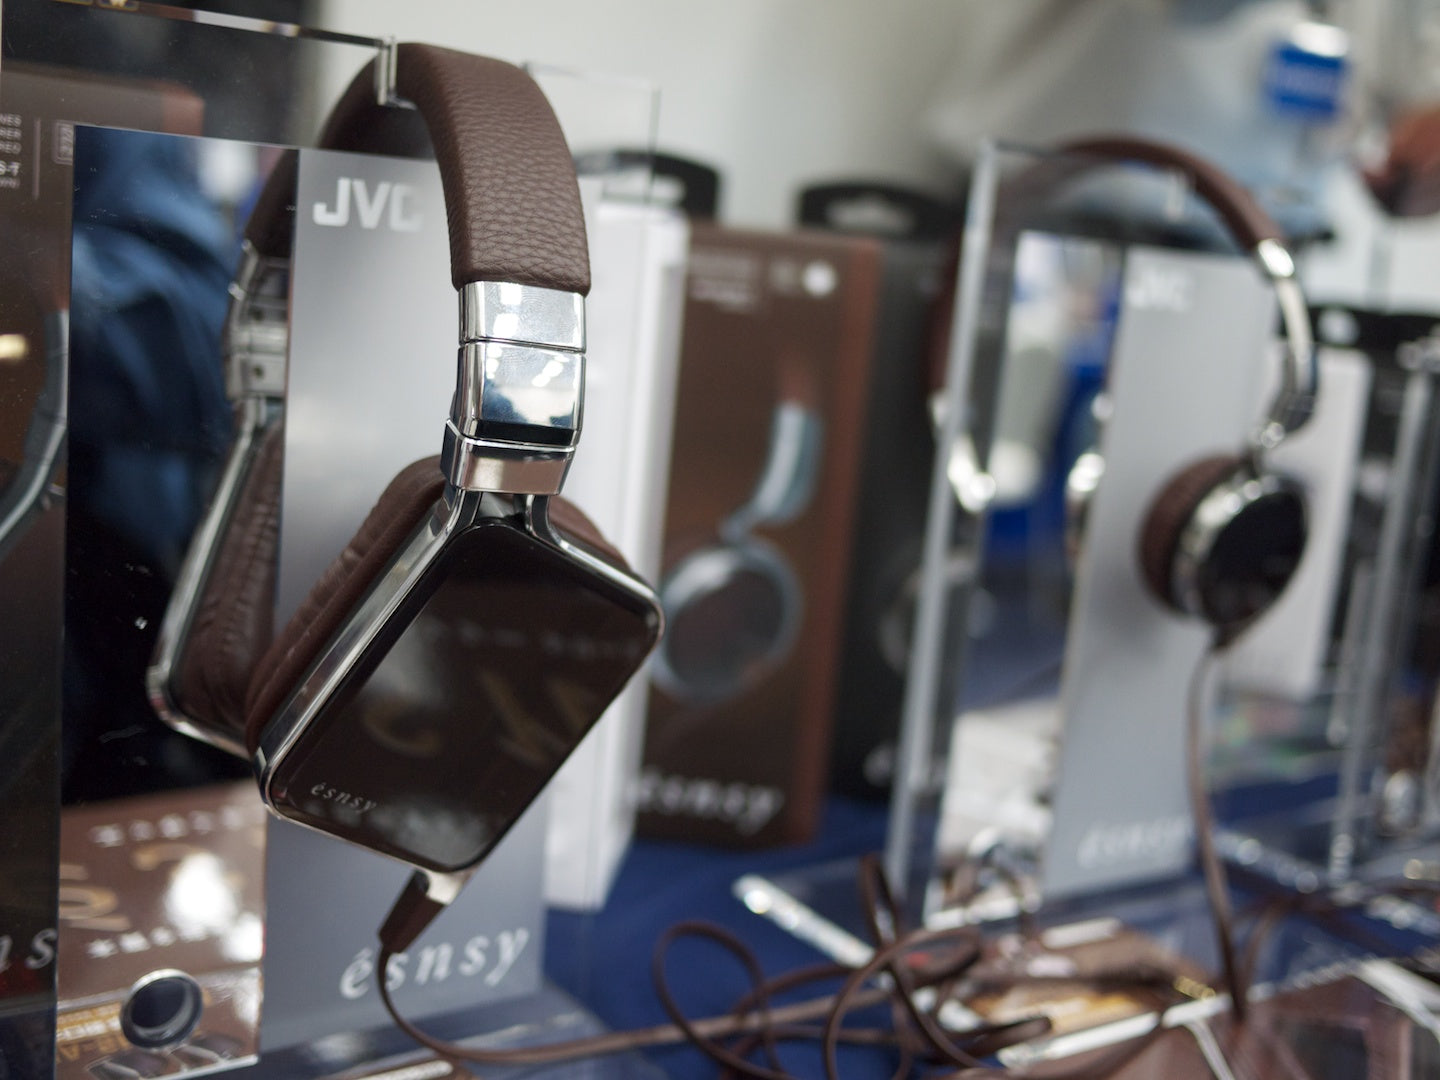 JVC's Luxury Headphone Lineup